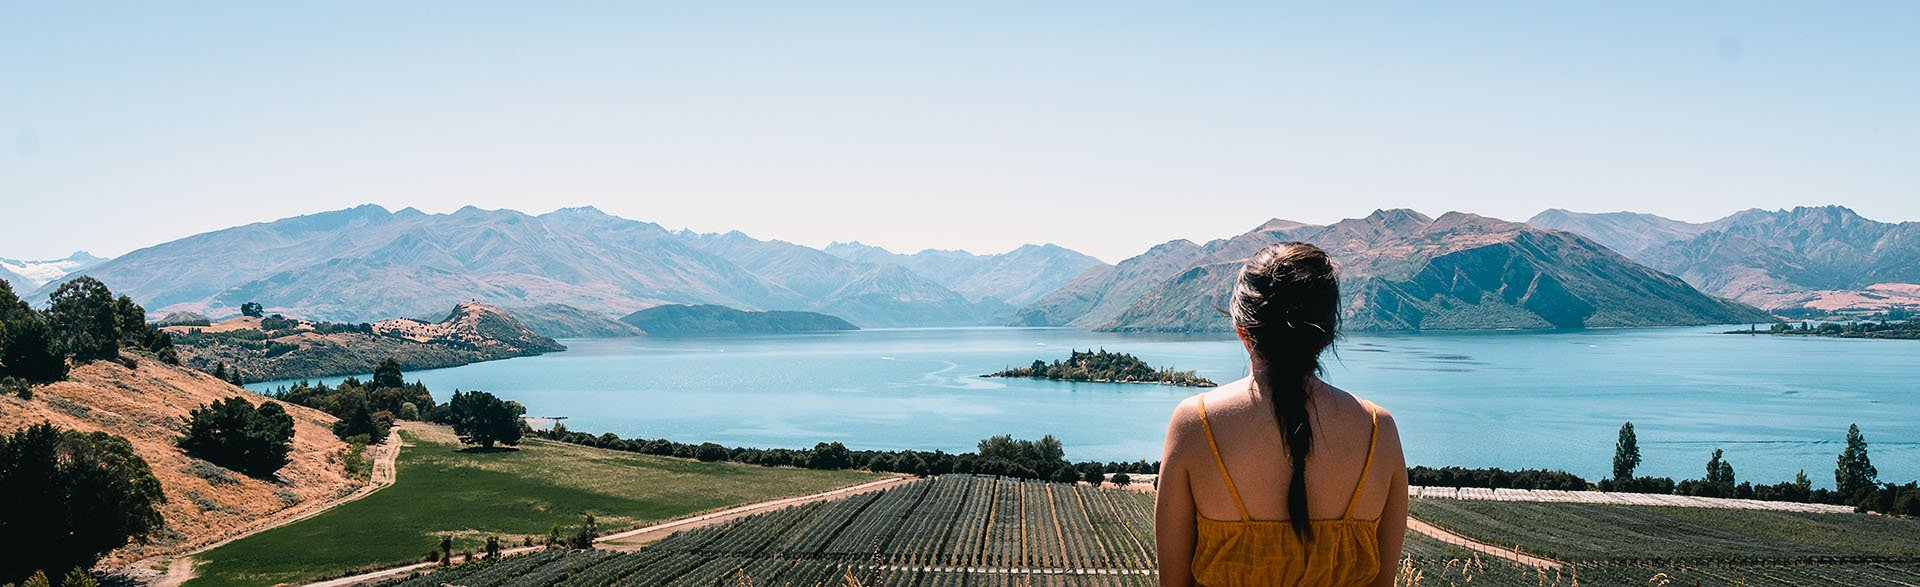 View over Lake Wanaka from Rippon Vineyard